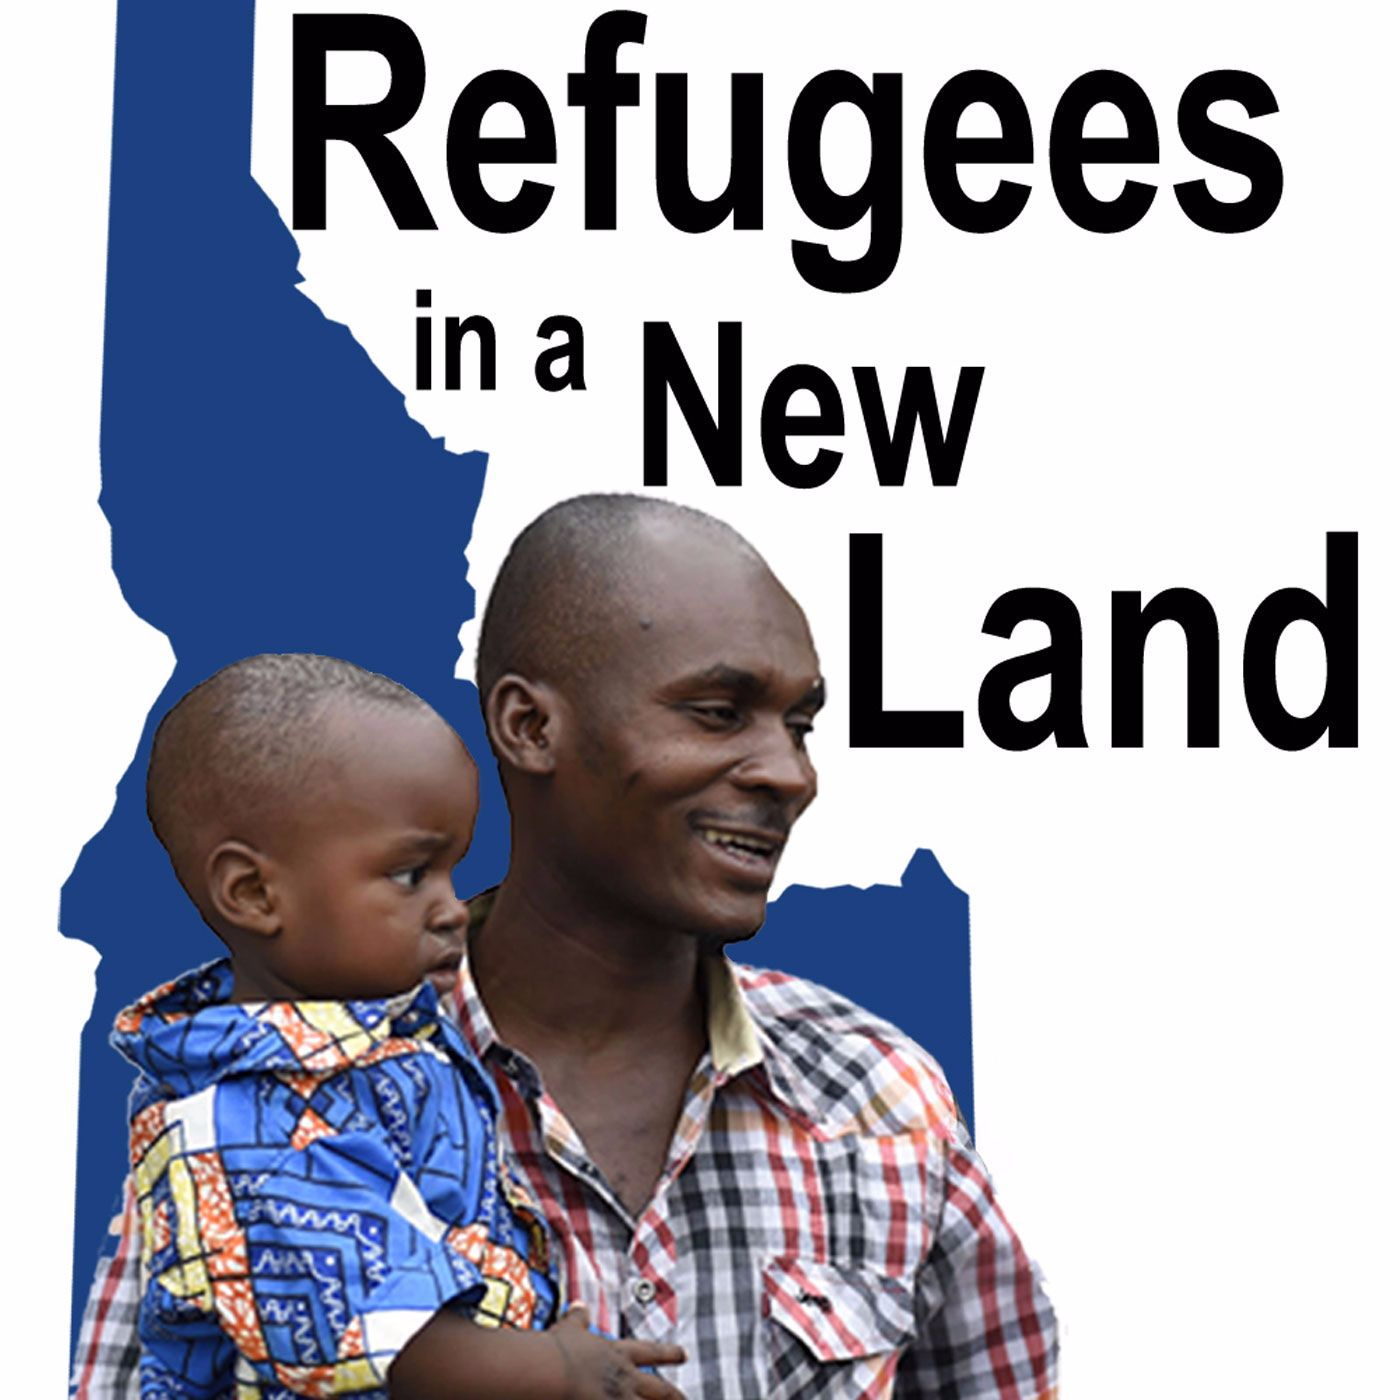 Refugees in a New Land